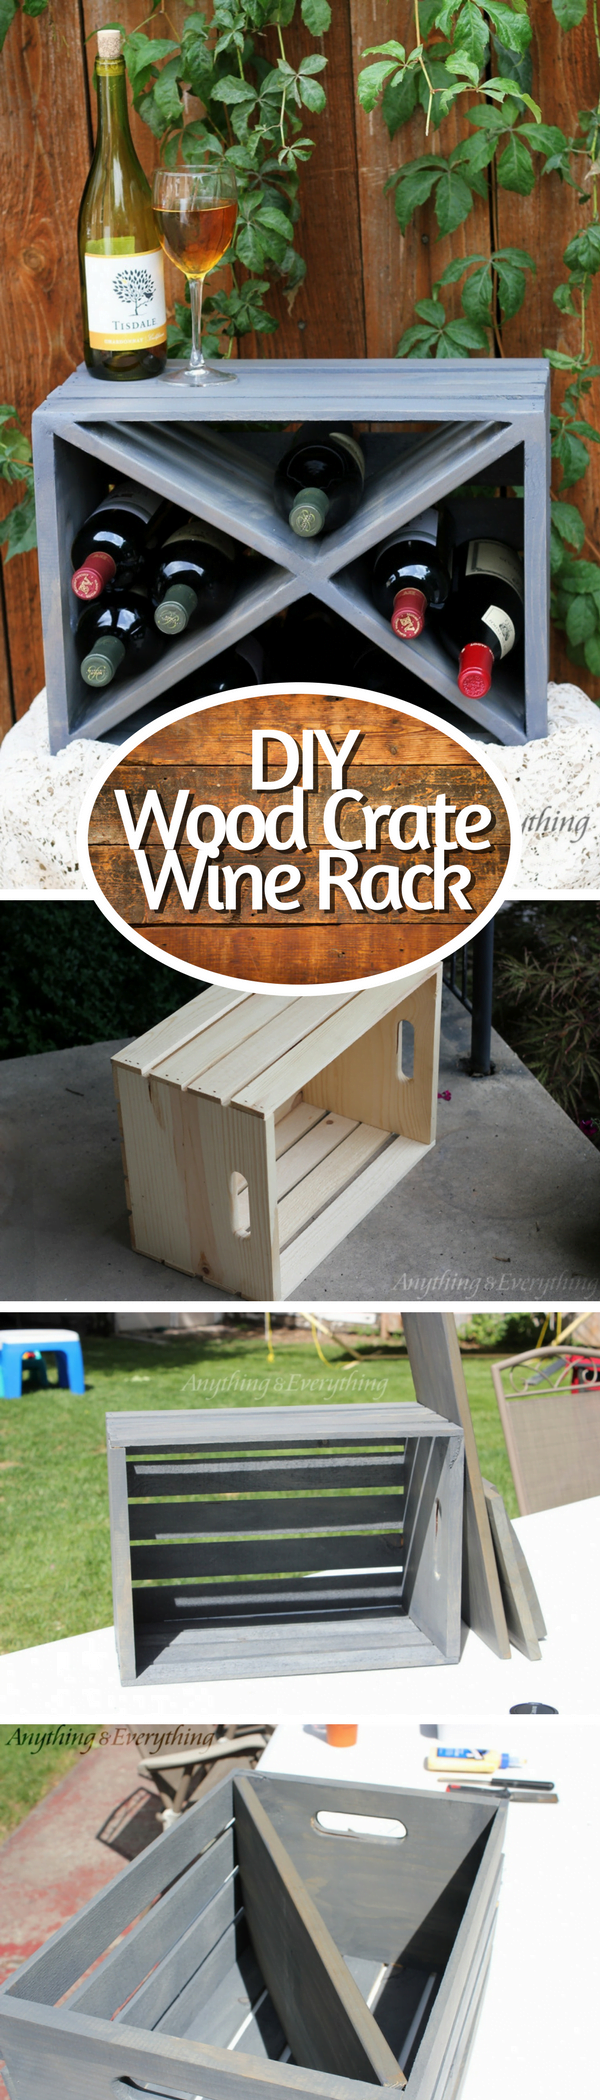 15 Brilliant DIY Crafts You Can Make with Wood Crates - Check out how to make an easy DIY wine rack from a wood crate